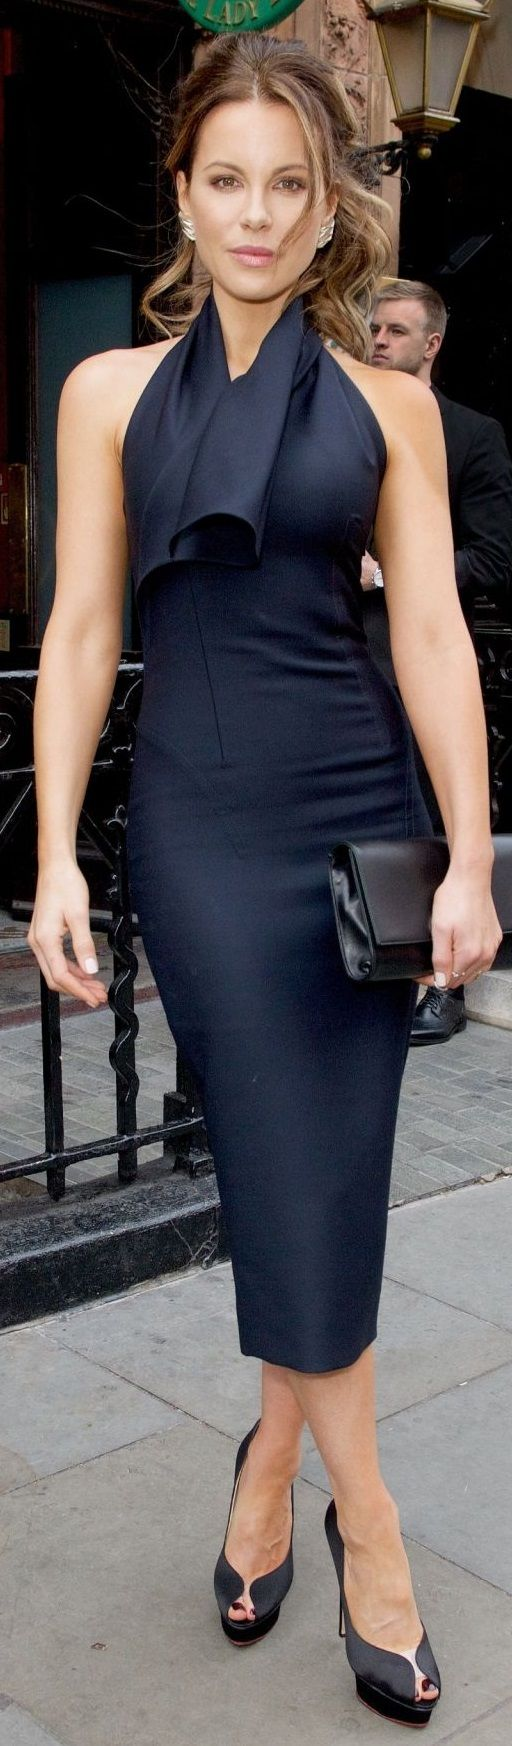 Kate Beckinsale - Lady Dior Party In London 5-30-2016